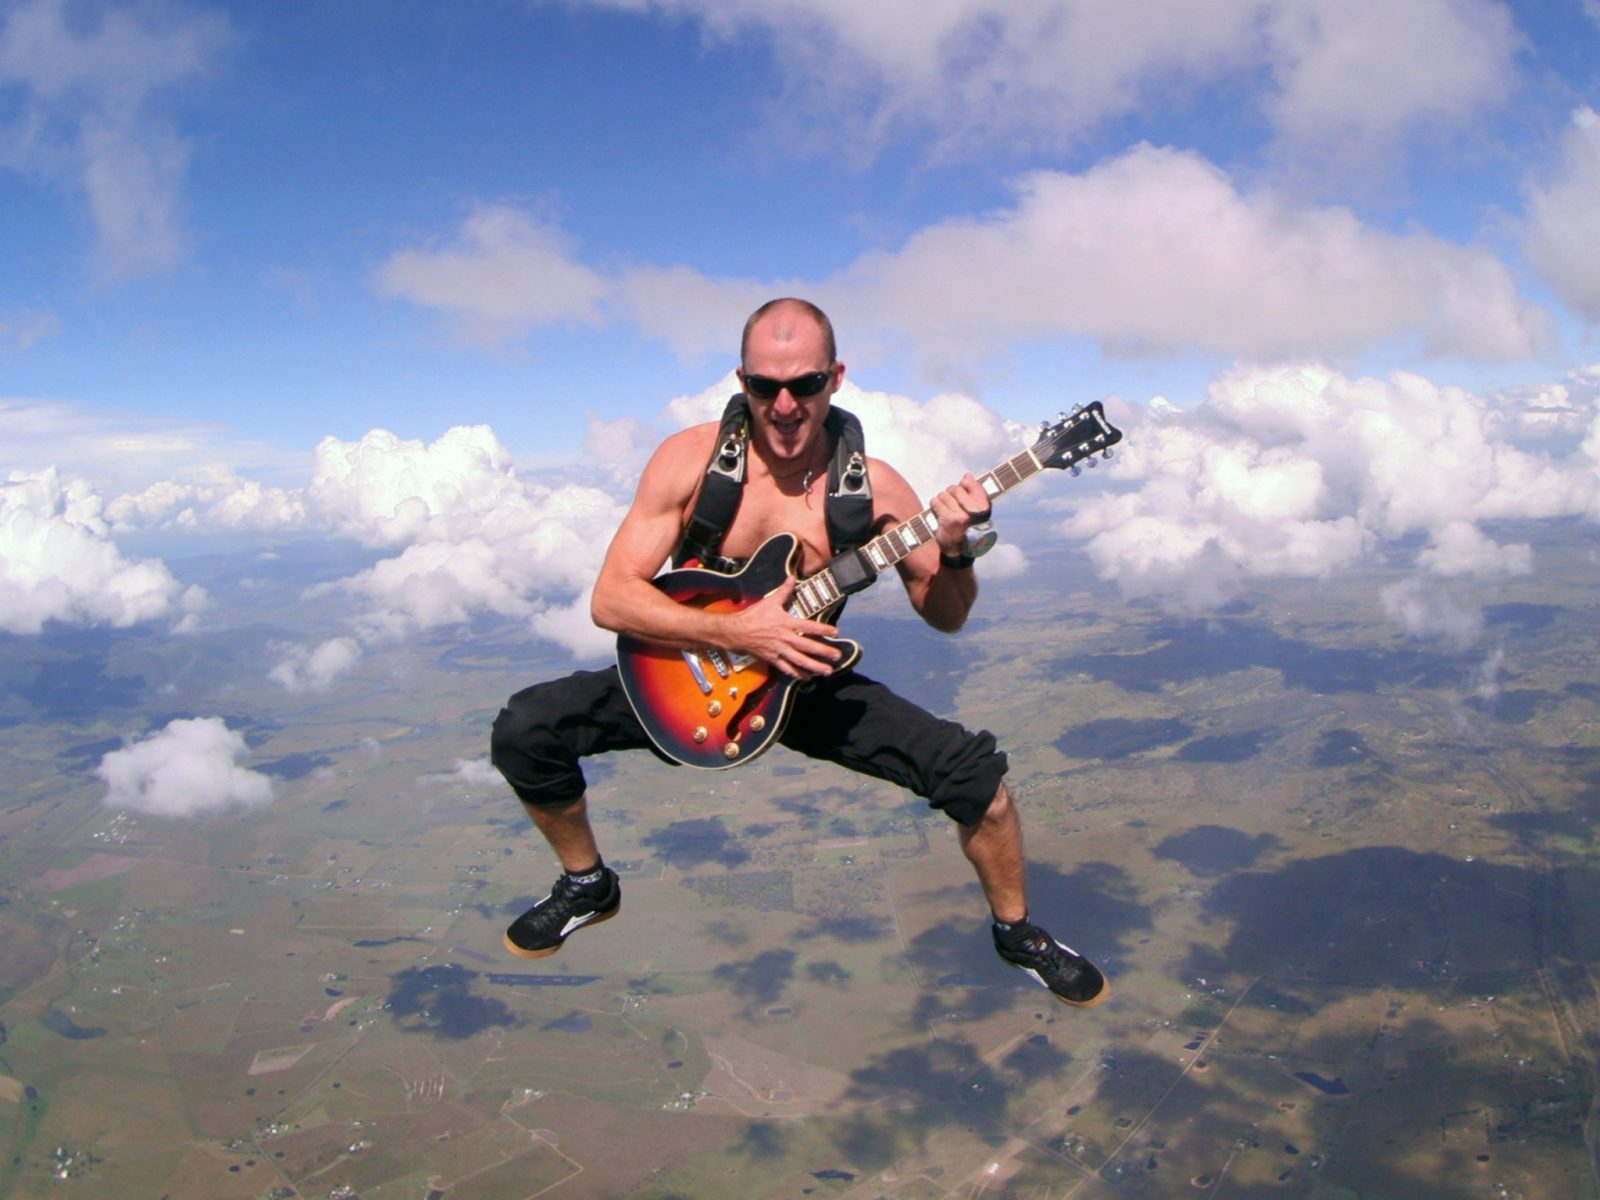 Justin Frame, guitar playing skydiver